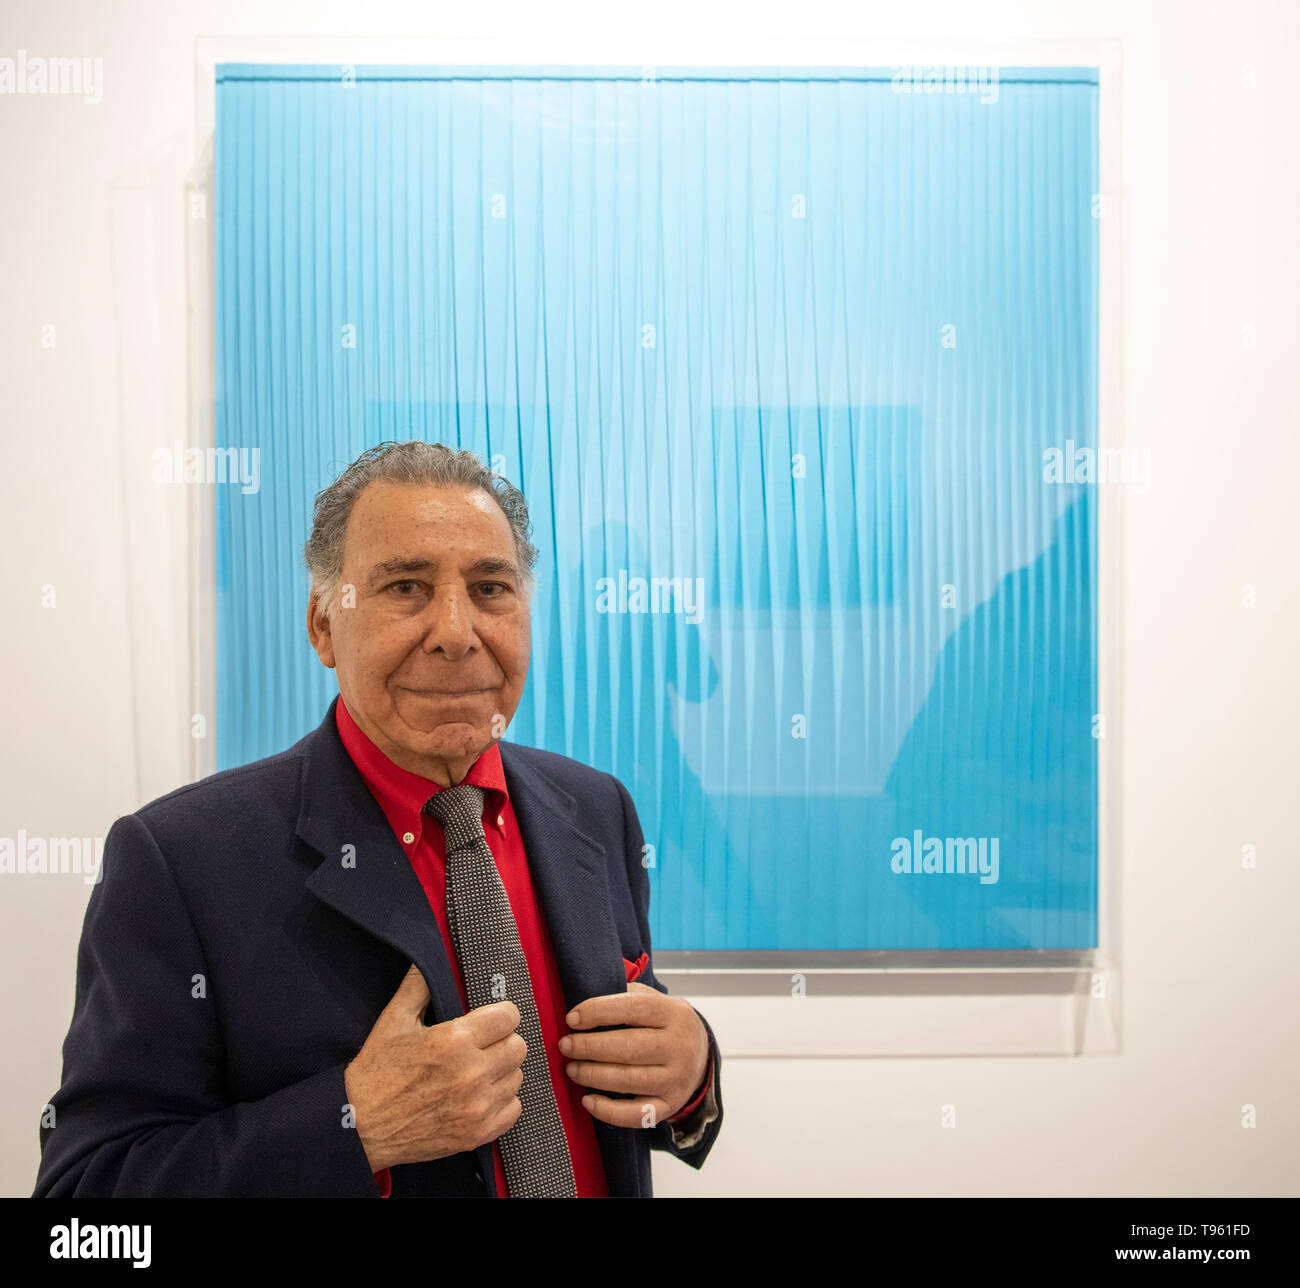 Opera Gallery, New Bond Street, London, UK. 17th May 2019. Organised in collaboration with the Italian Embassy in London, the exhibition includes 40 iconic canvases by Lucio Fontana, Agostino Bonalumi and Enrico Castellani among others, tapping into the unprecedented attention Italian post-war art is currently receiving. Image: Pino Manos, one of the last surviving artists of Spatialism, in front of his canvas Sincronicità blu reale, 2018. Credit: Malcolm Park/Alamy Live News. - Stock Image